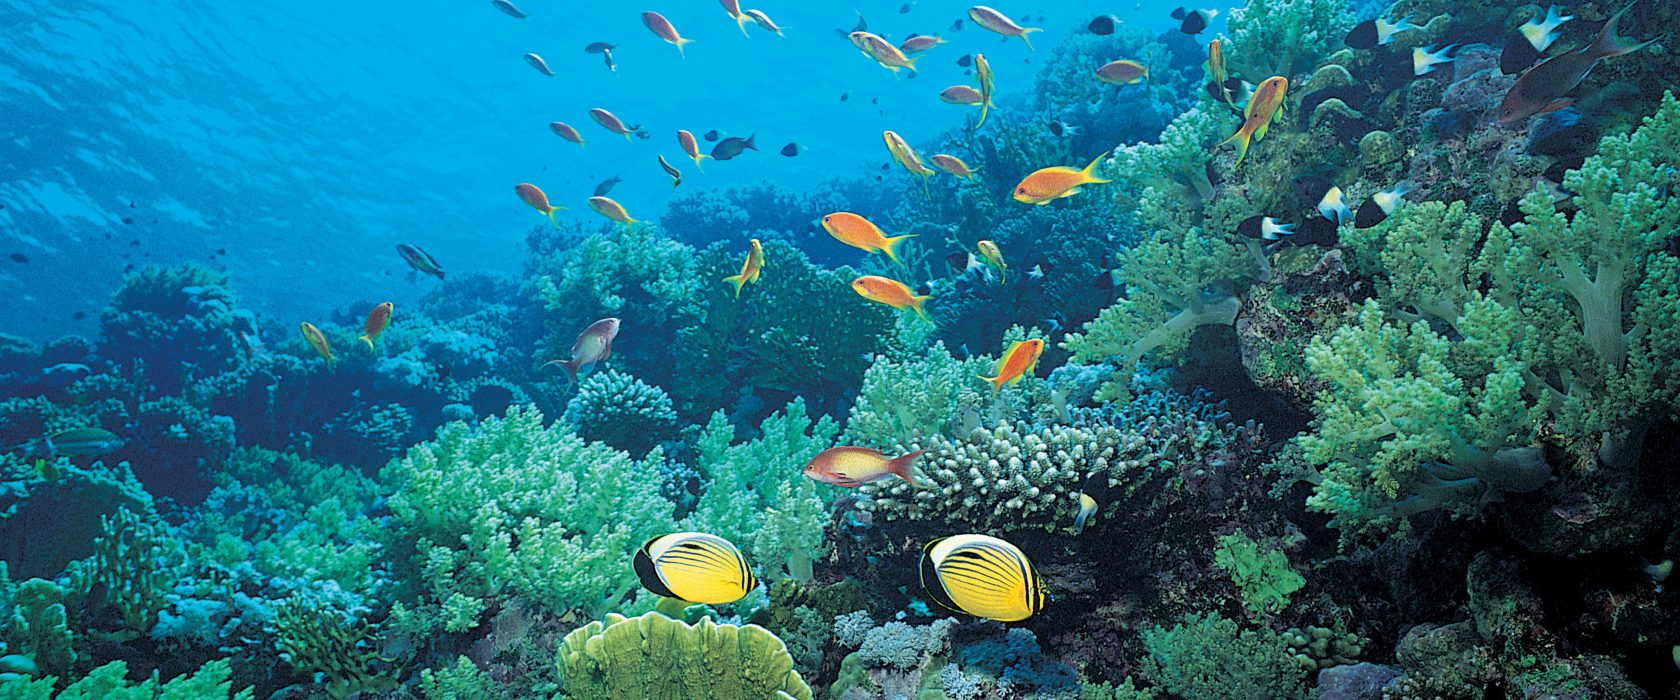 Reef With Tropical Fish